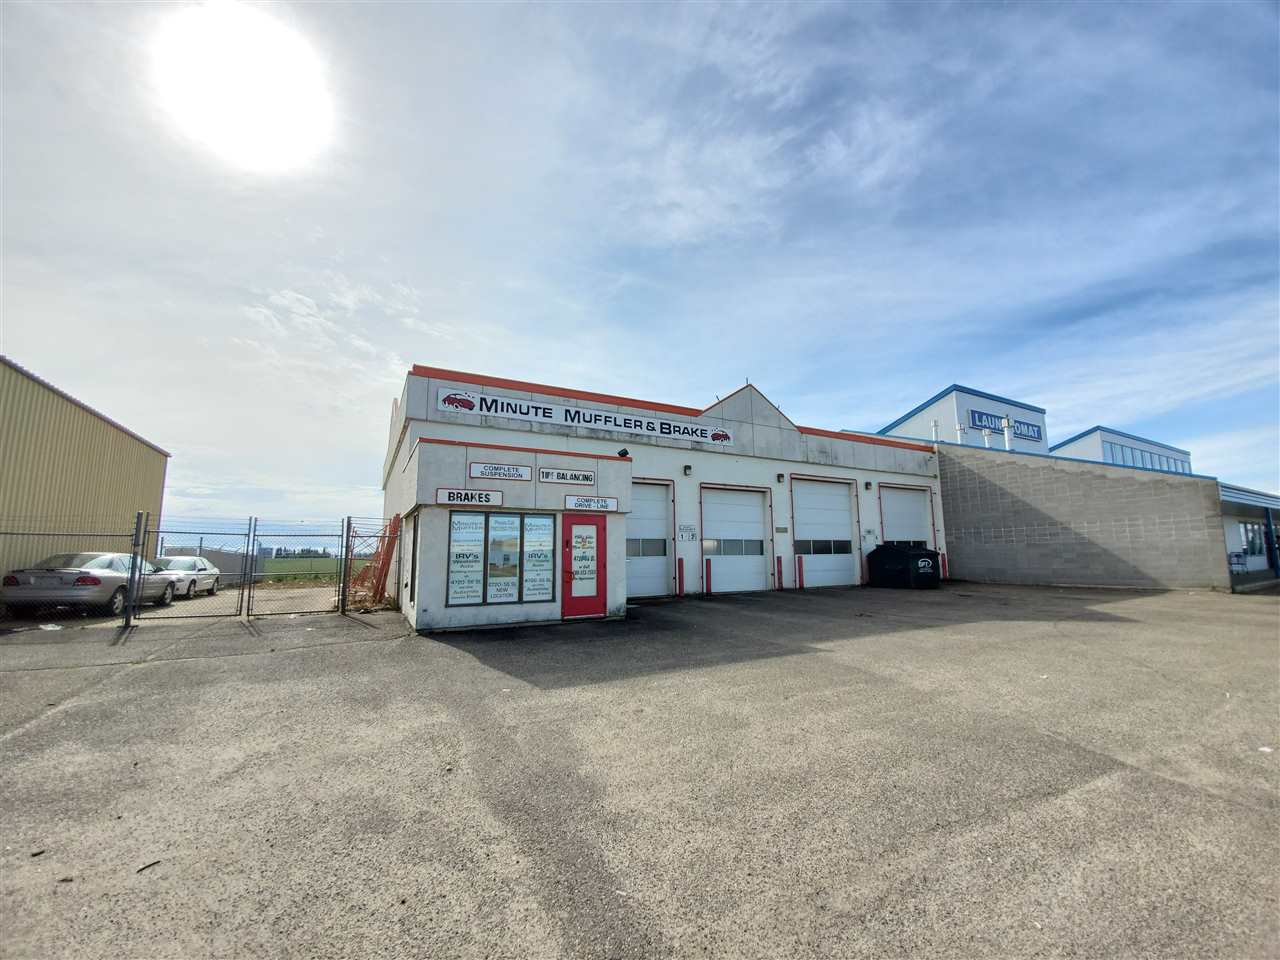 Main Photo: 5417 36 Avenue: Wetaskiwin Industrial for sale : MLS®# E4173654